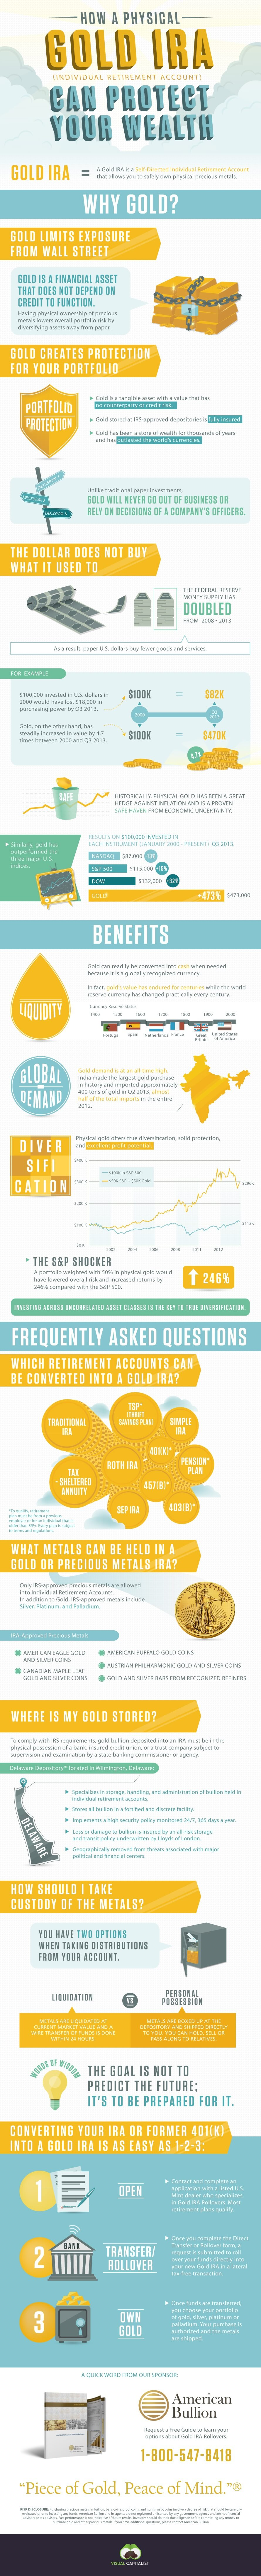 How a physical gold IRA can protect your wealth [infographic]